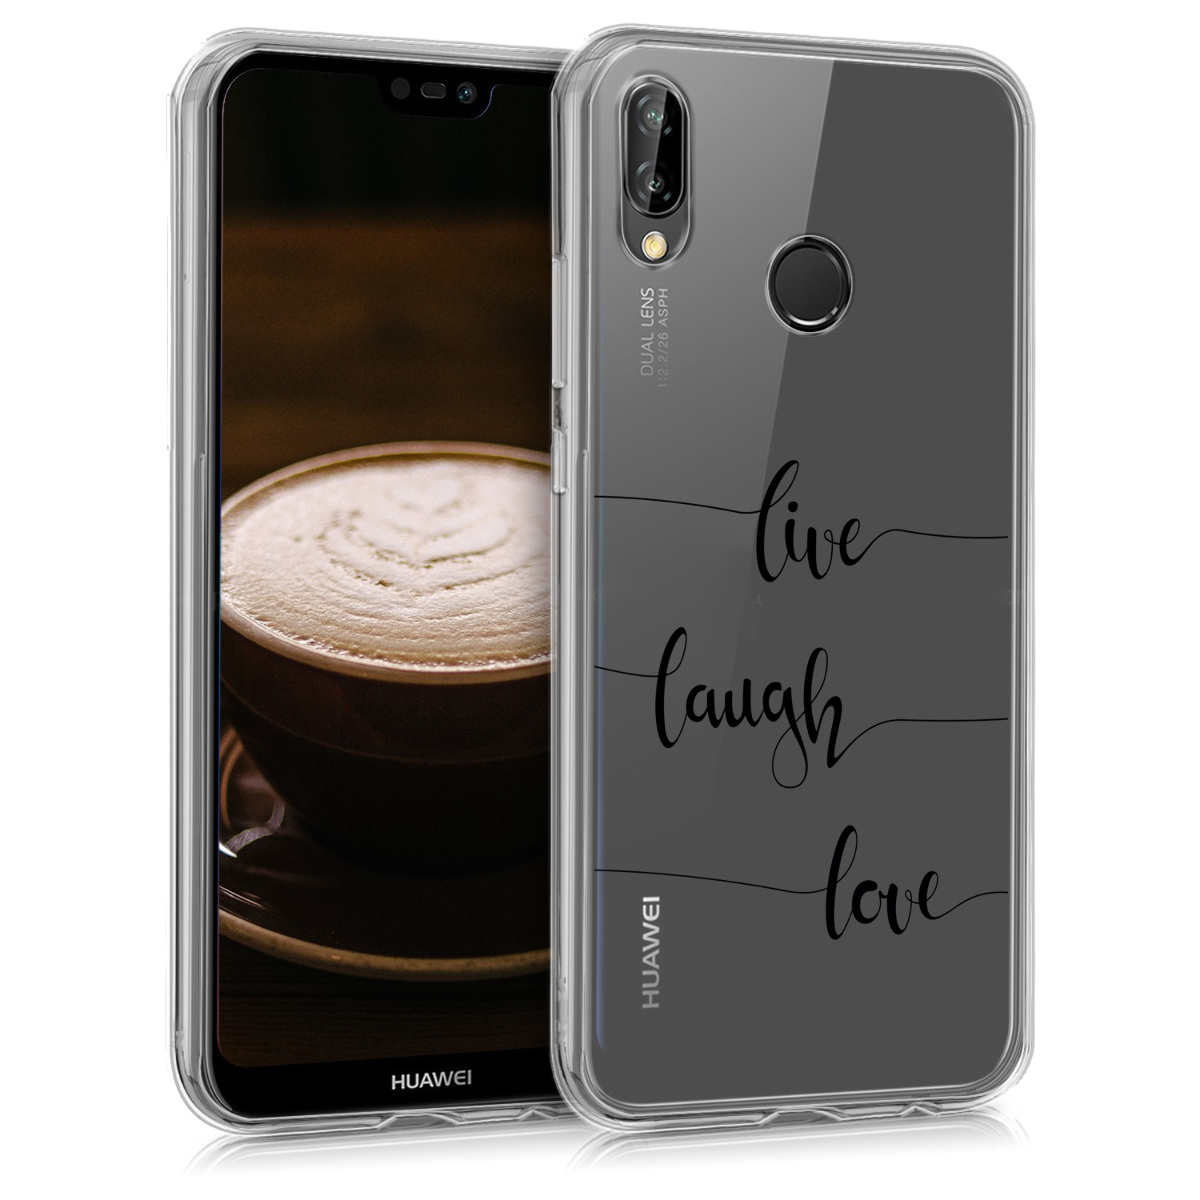 KW Θήκη Σιλικόνης Huawei P20 Lite - Live Laugh Love (44373.09)